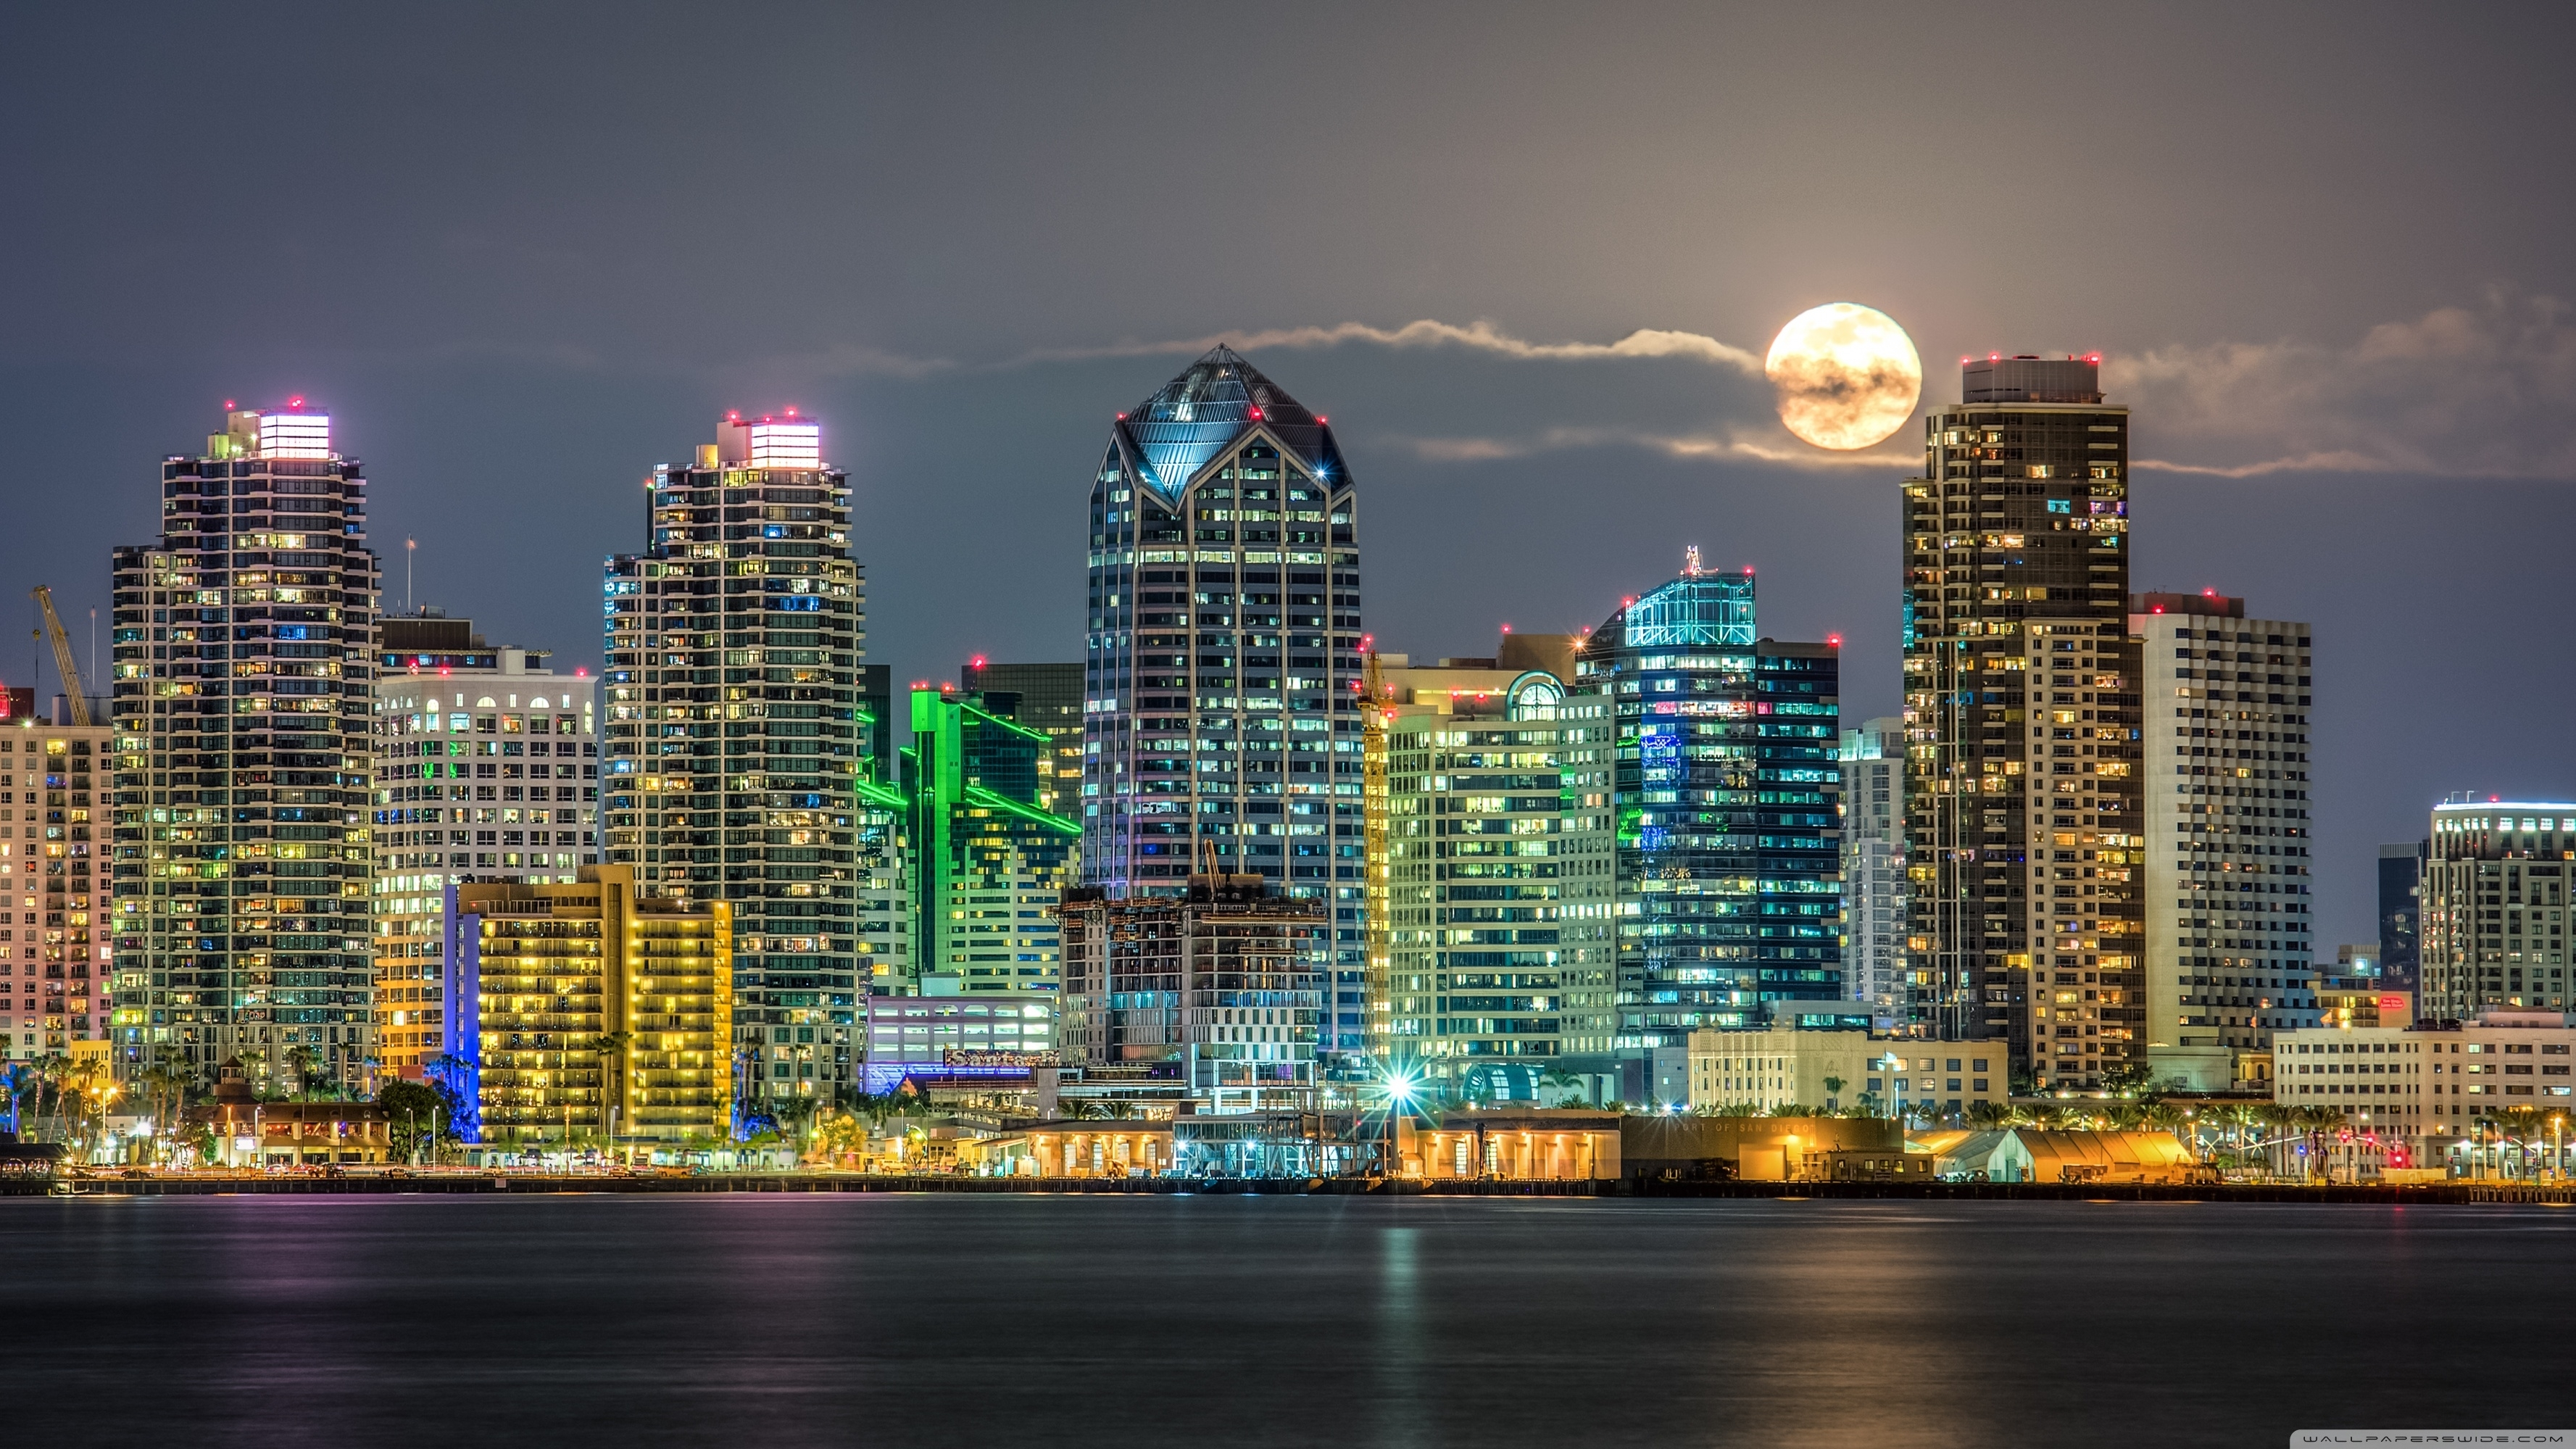 san diego skyline ❤ 4k hd desktop wallpaper for • wide & ultra